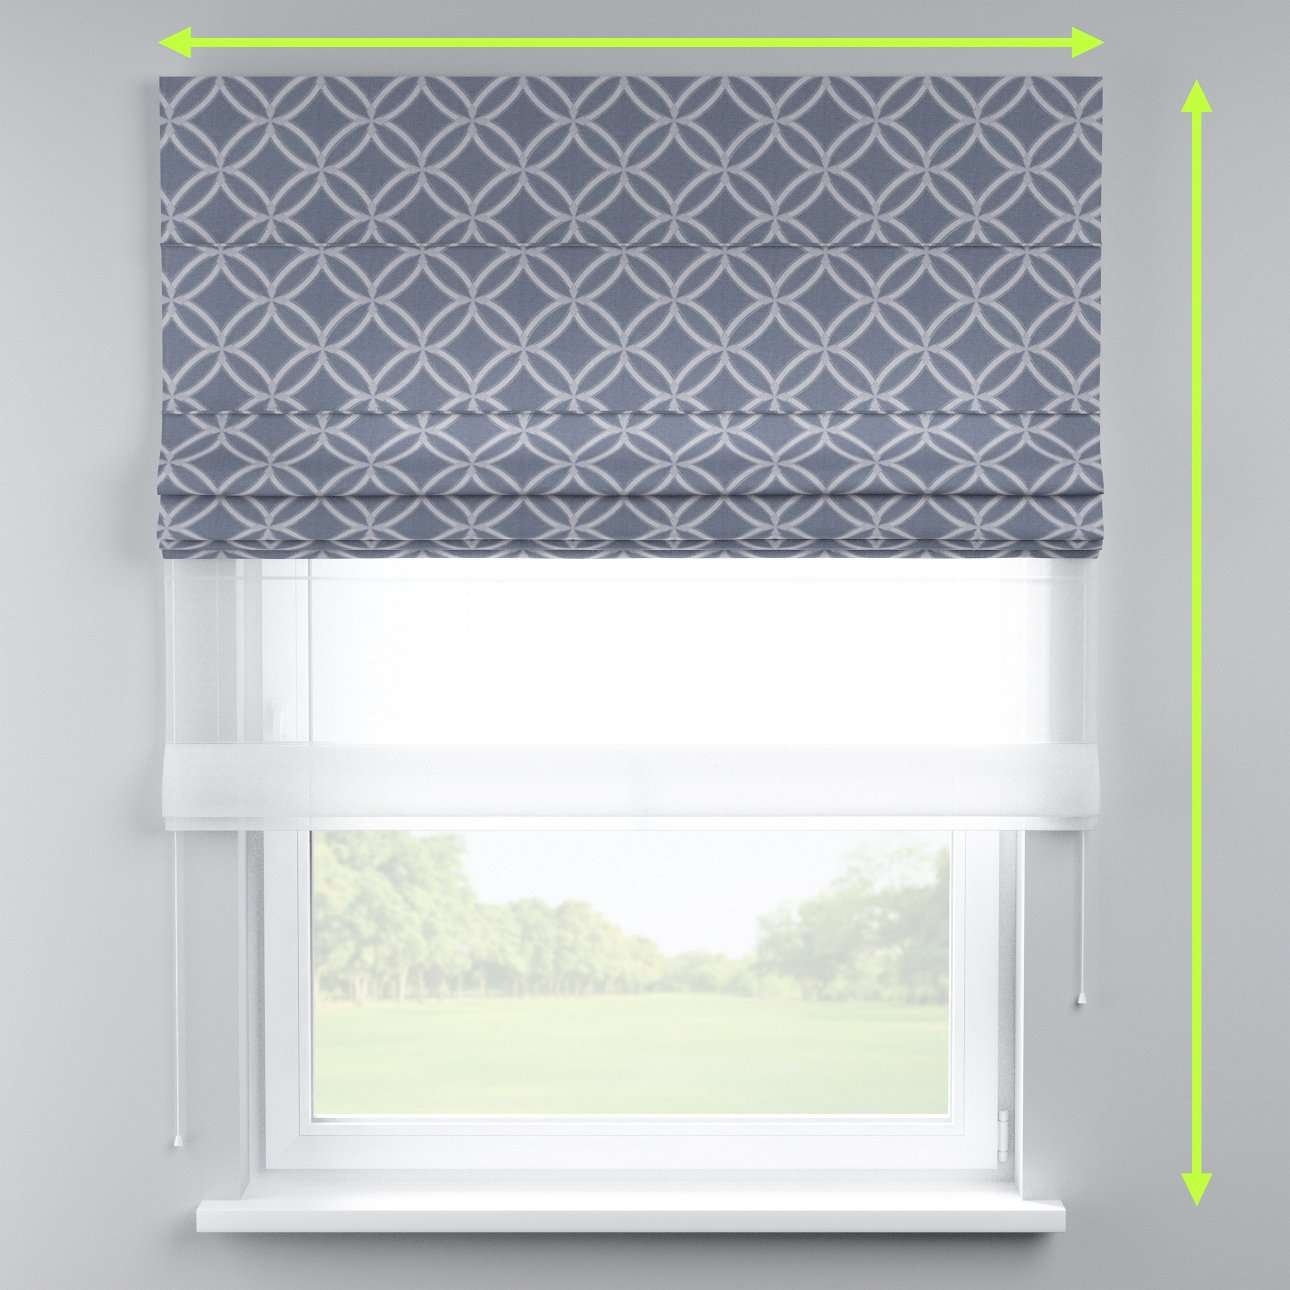 Voile and fabric roman blind (DUO II) in collection Venice, fabric: 140-53